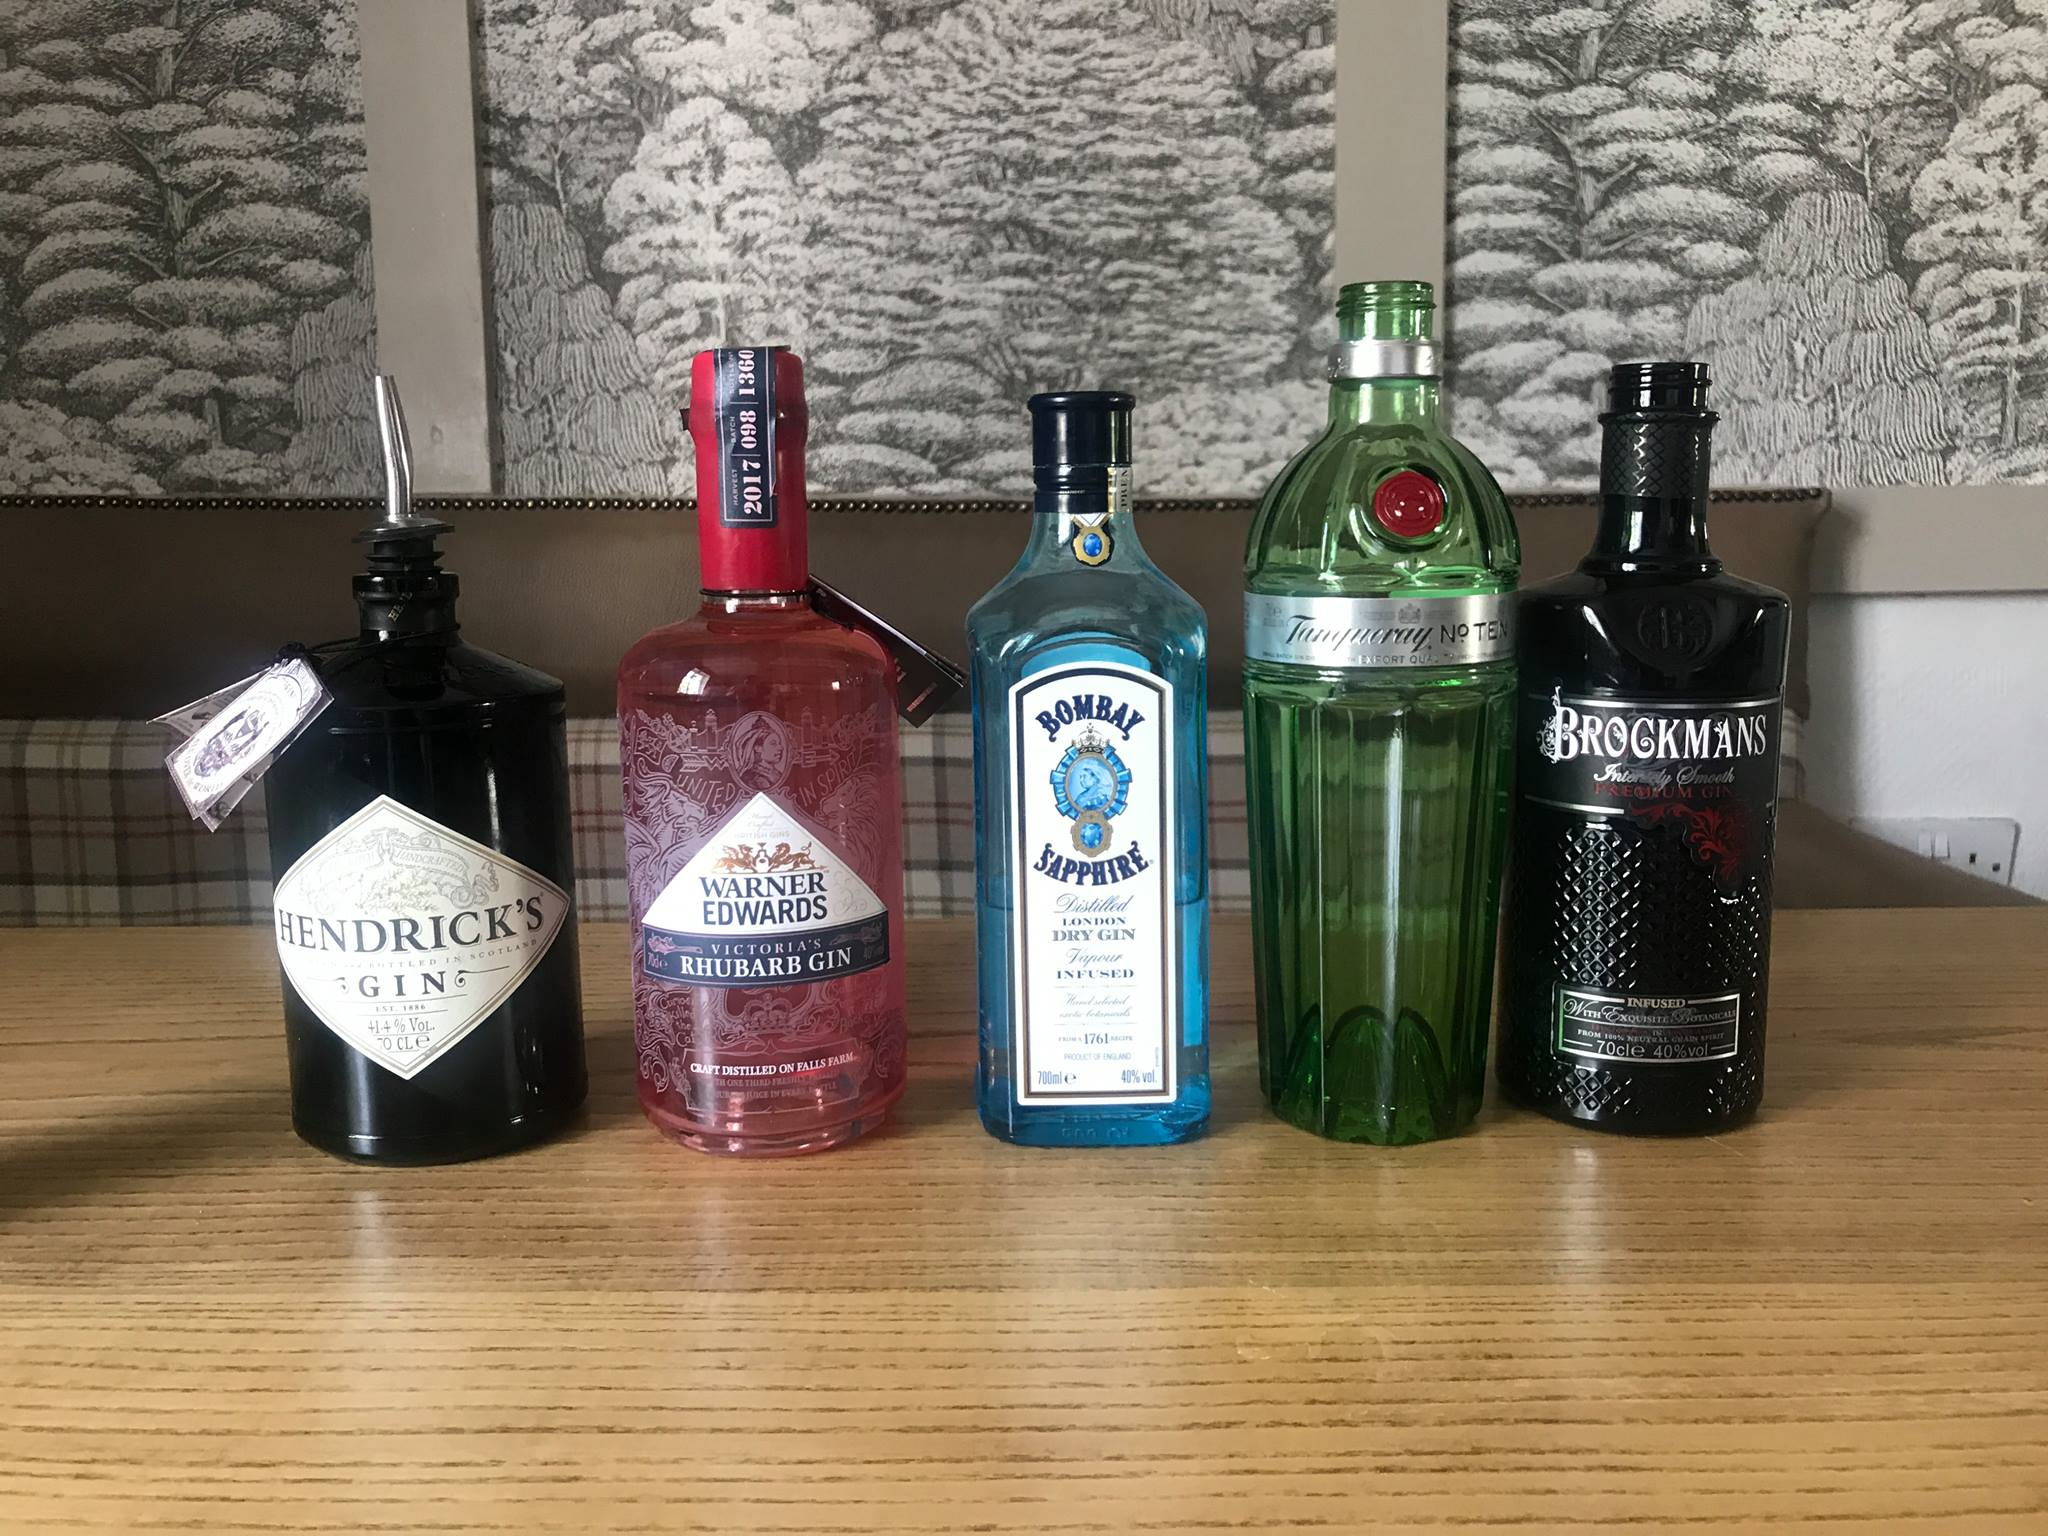 PREMIUM GIN TASTING - FRIDAY 8TH JUNE 2018